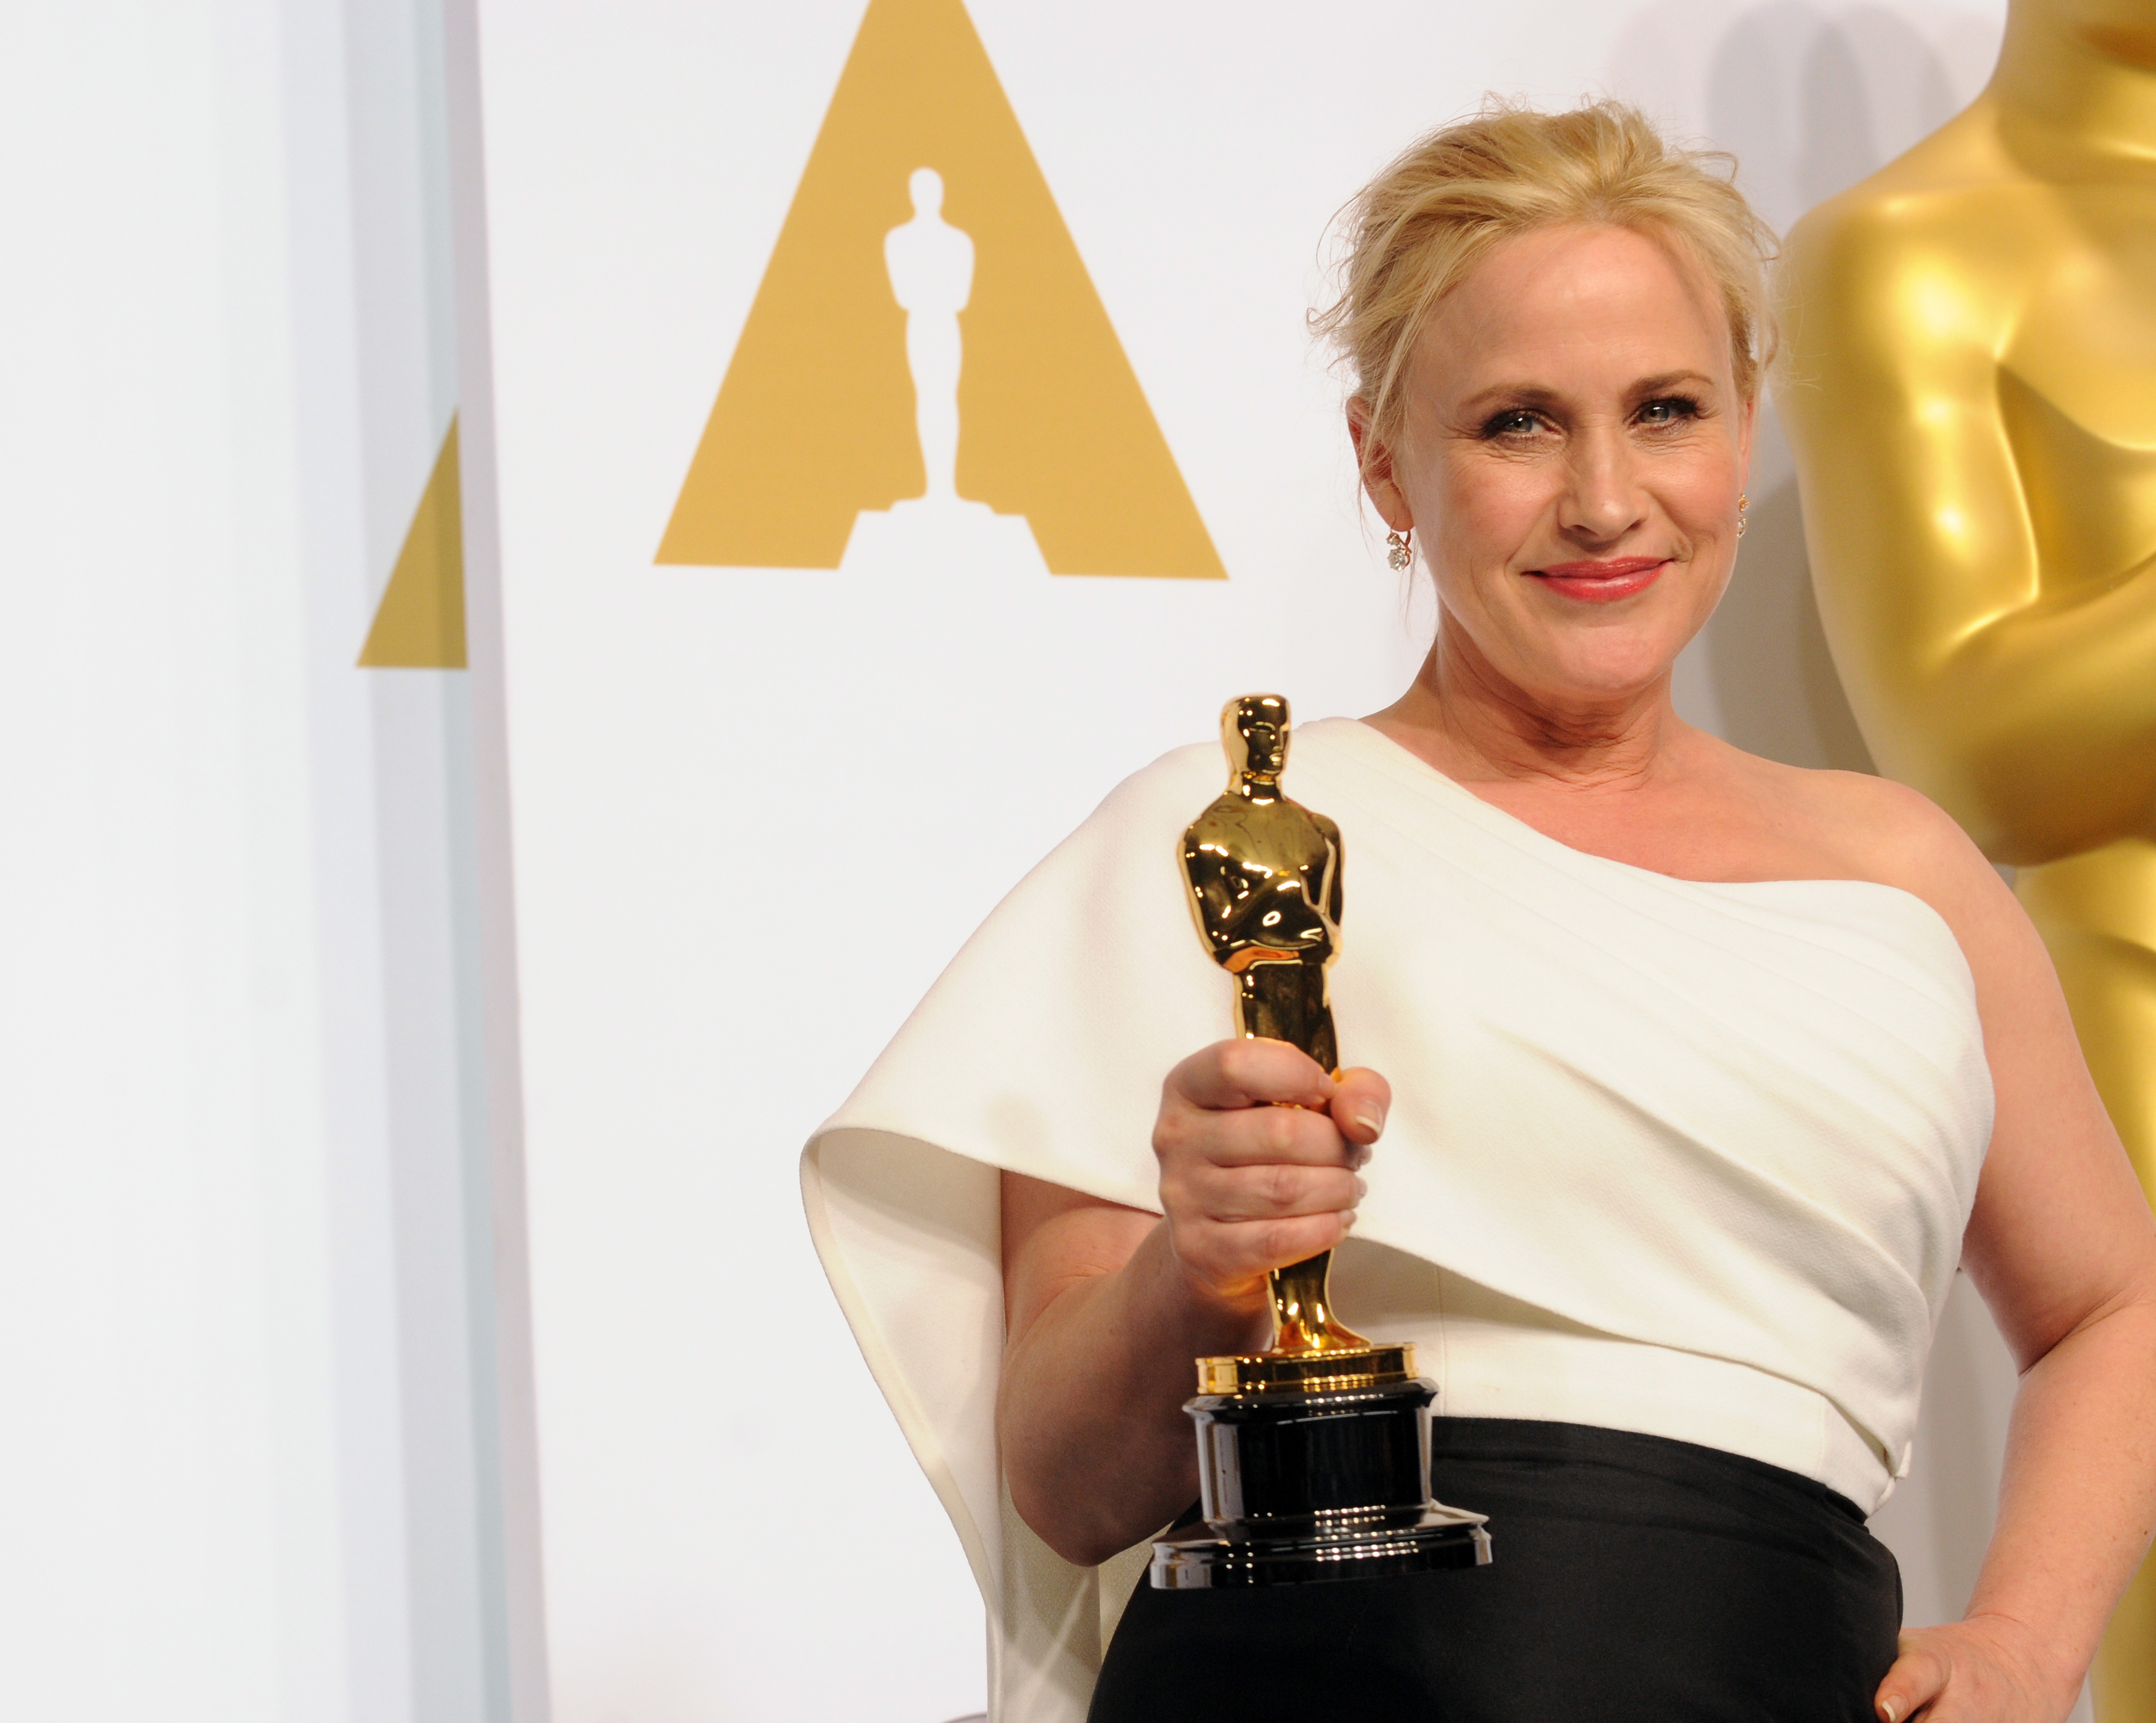 Actress Patricia Arquette winner for Best Supporting Actress in  Boyhood  poses inside the press room of the 87th Annual Academy Awards held at Loews Hollywood Hotel on February 22, 2015 in Hollywood, California.